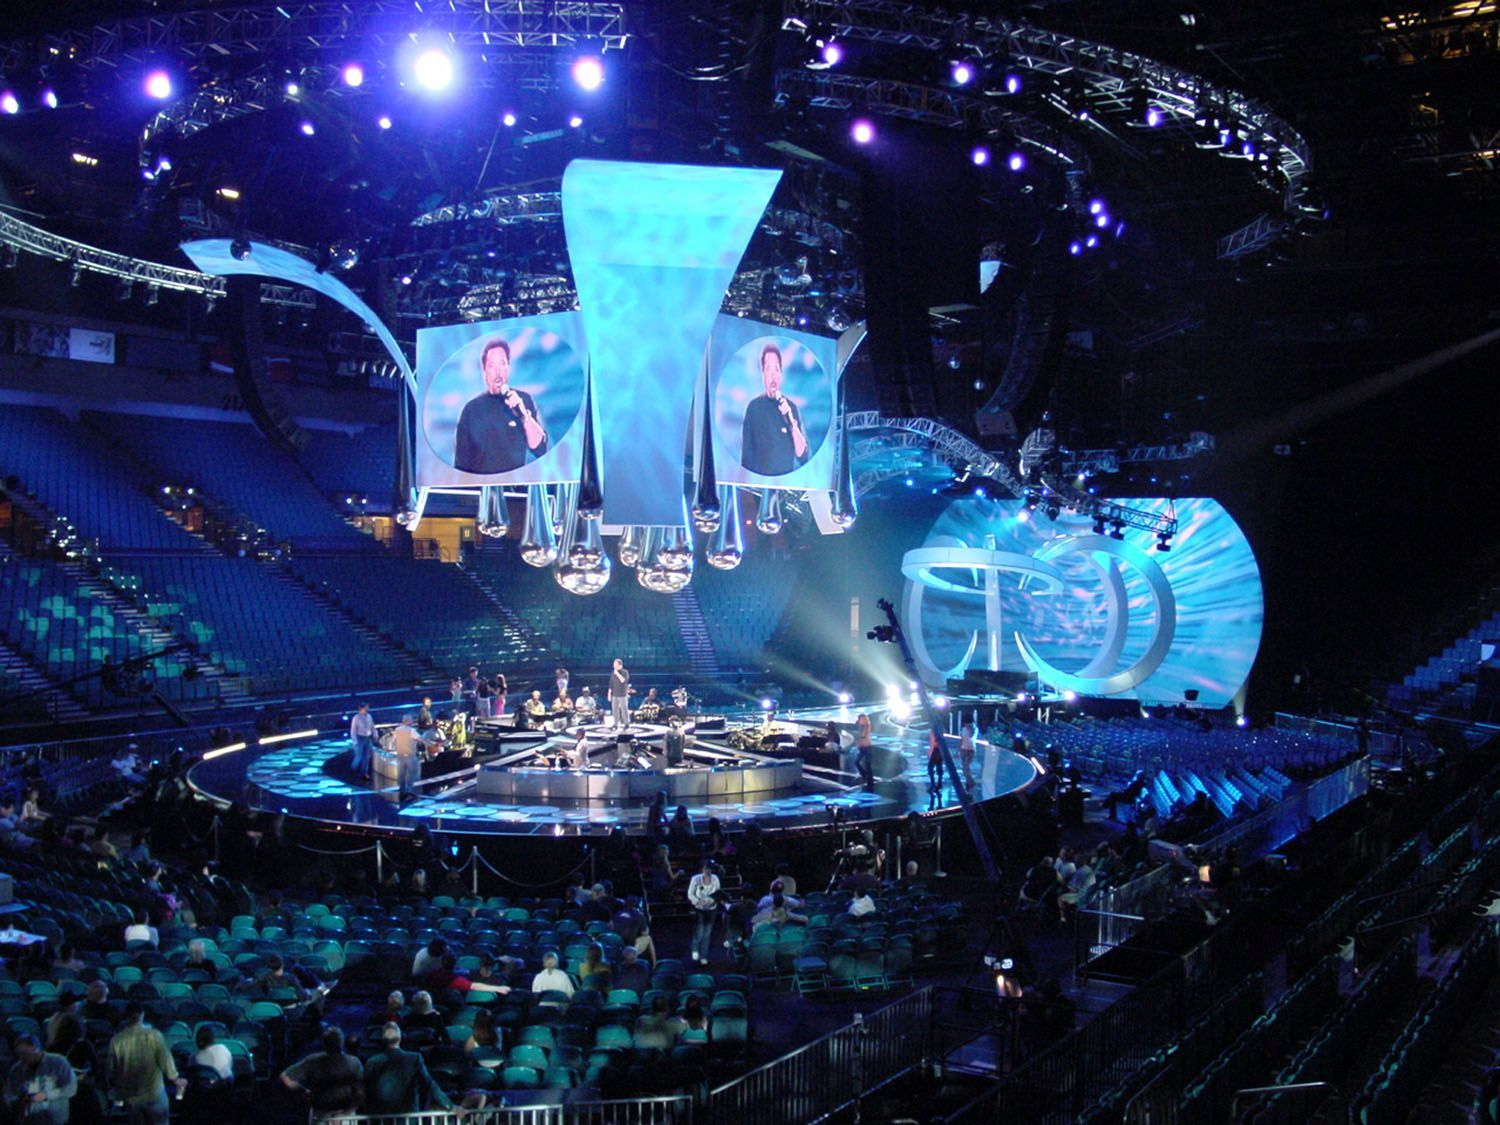 Pin on Rock concert: arena stage design